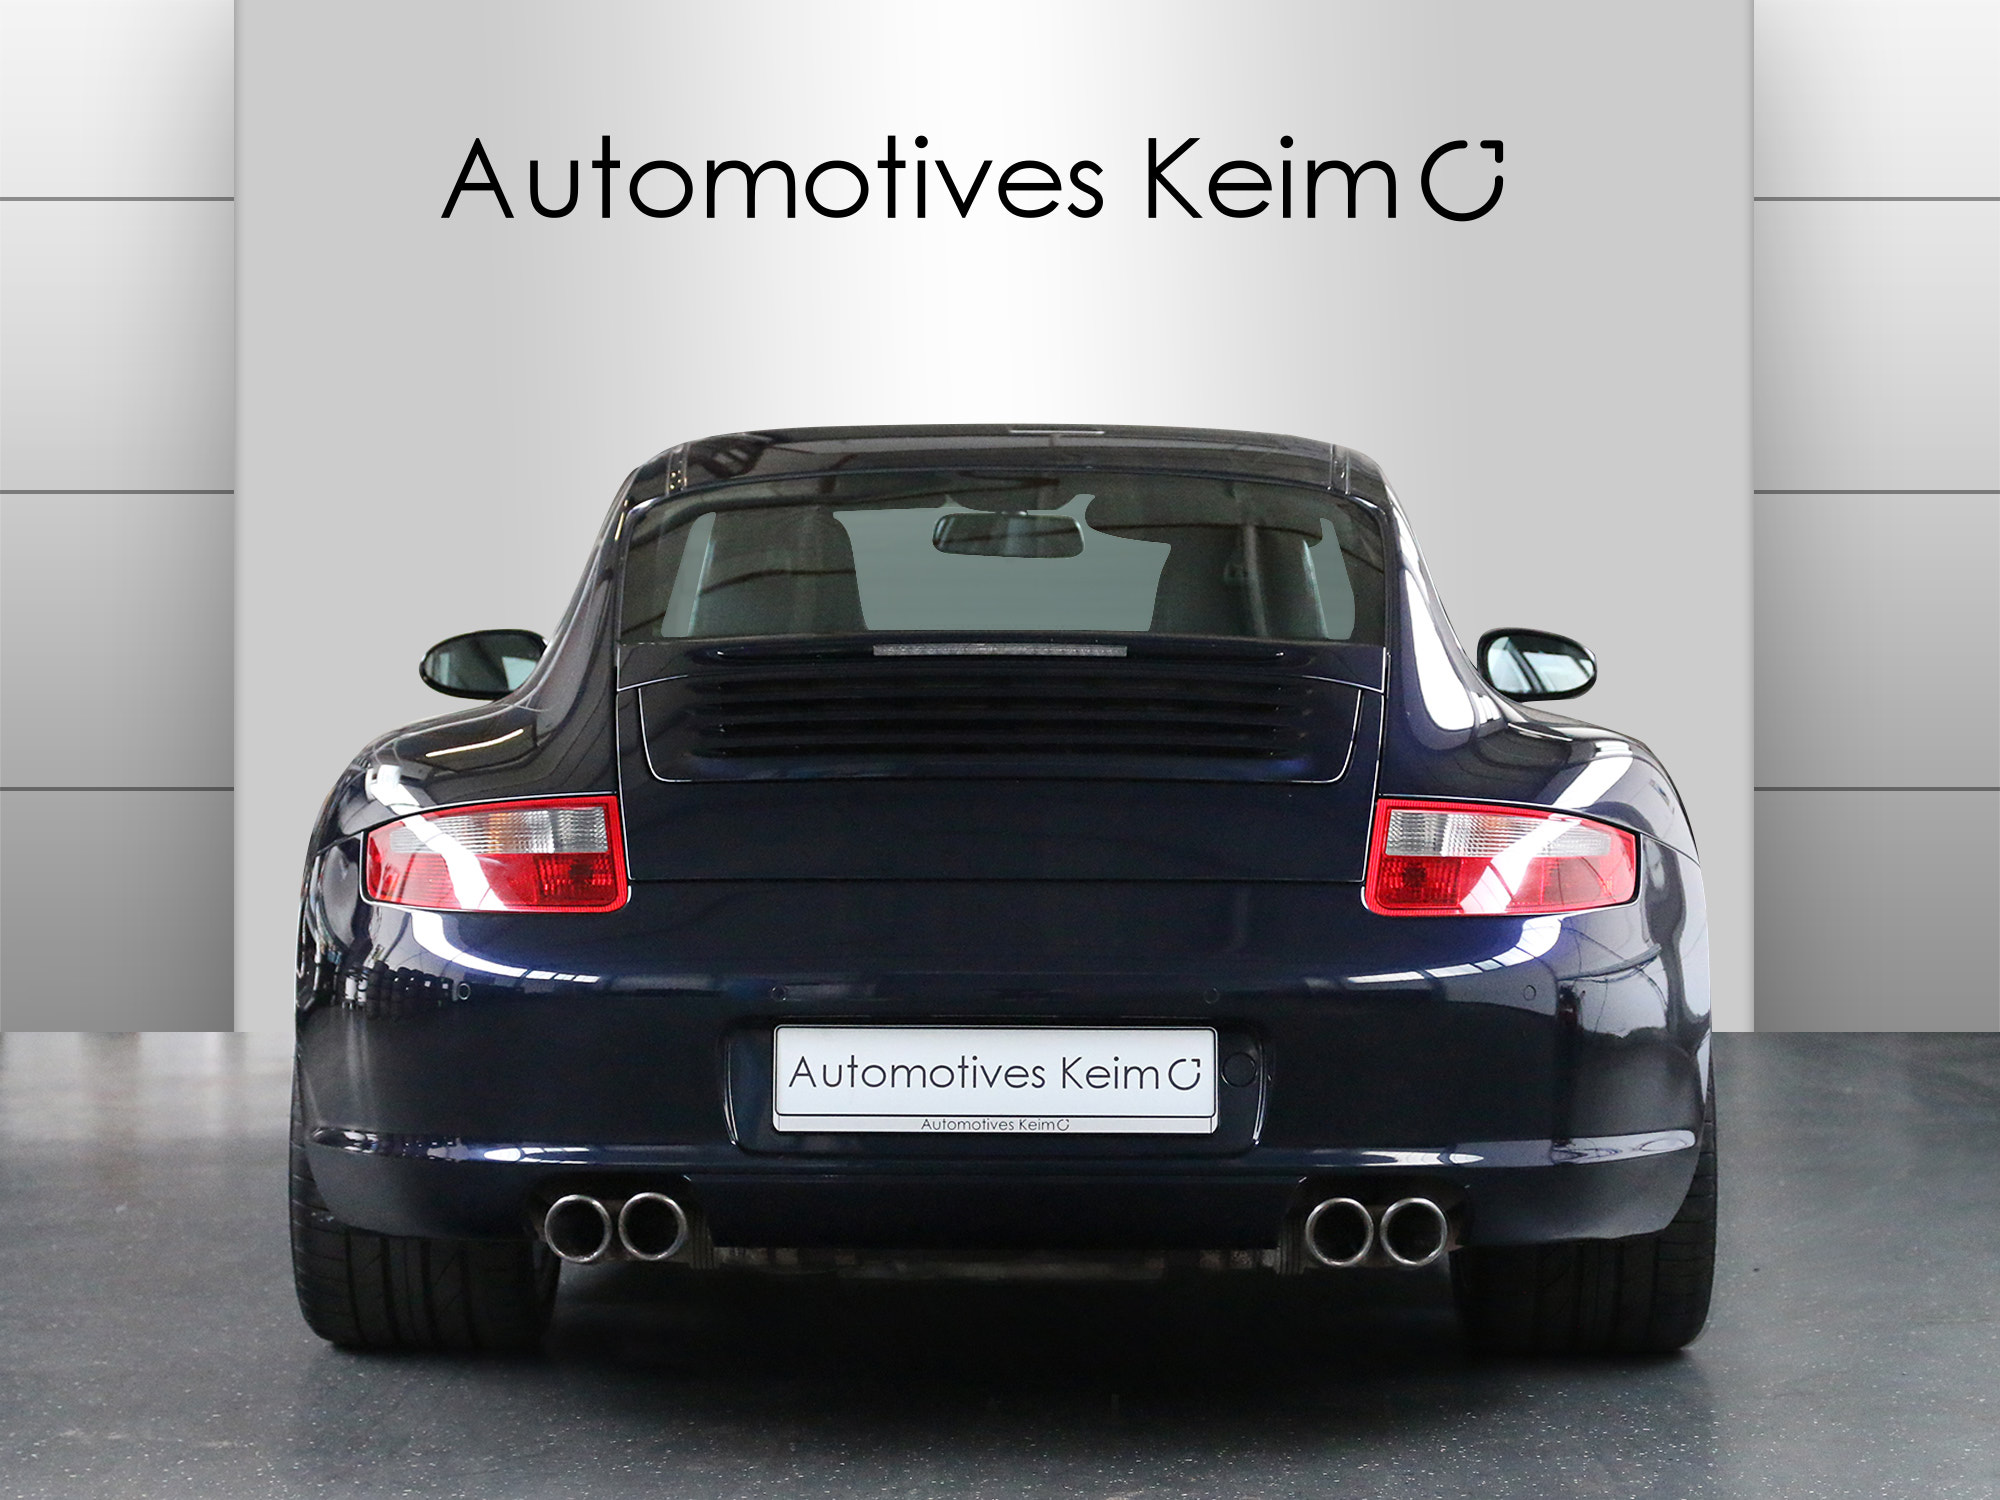 PORSCHE 911 997 Automotives Keim GmbH 63500 Seligenstadt Www.automotives Keim.de Oliver Keim 000138